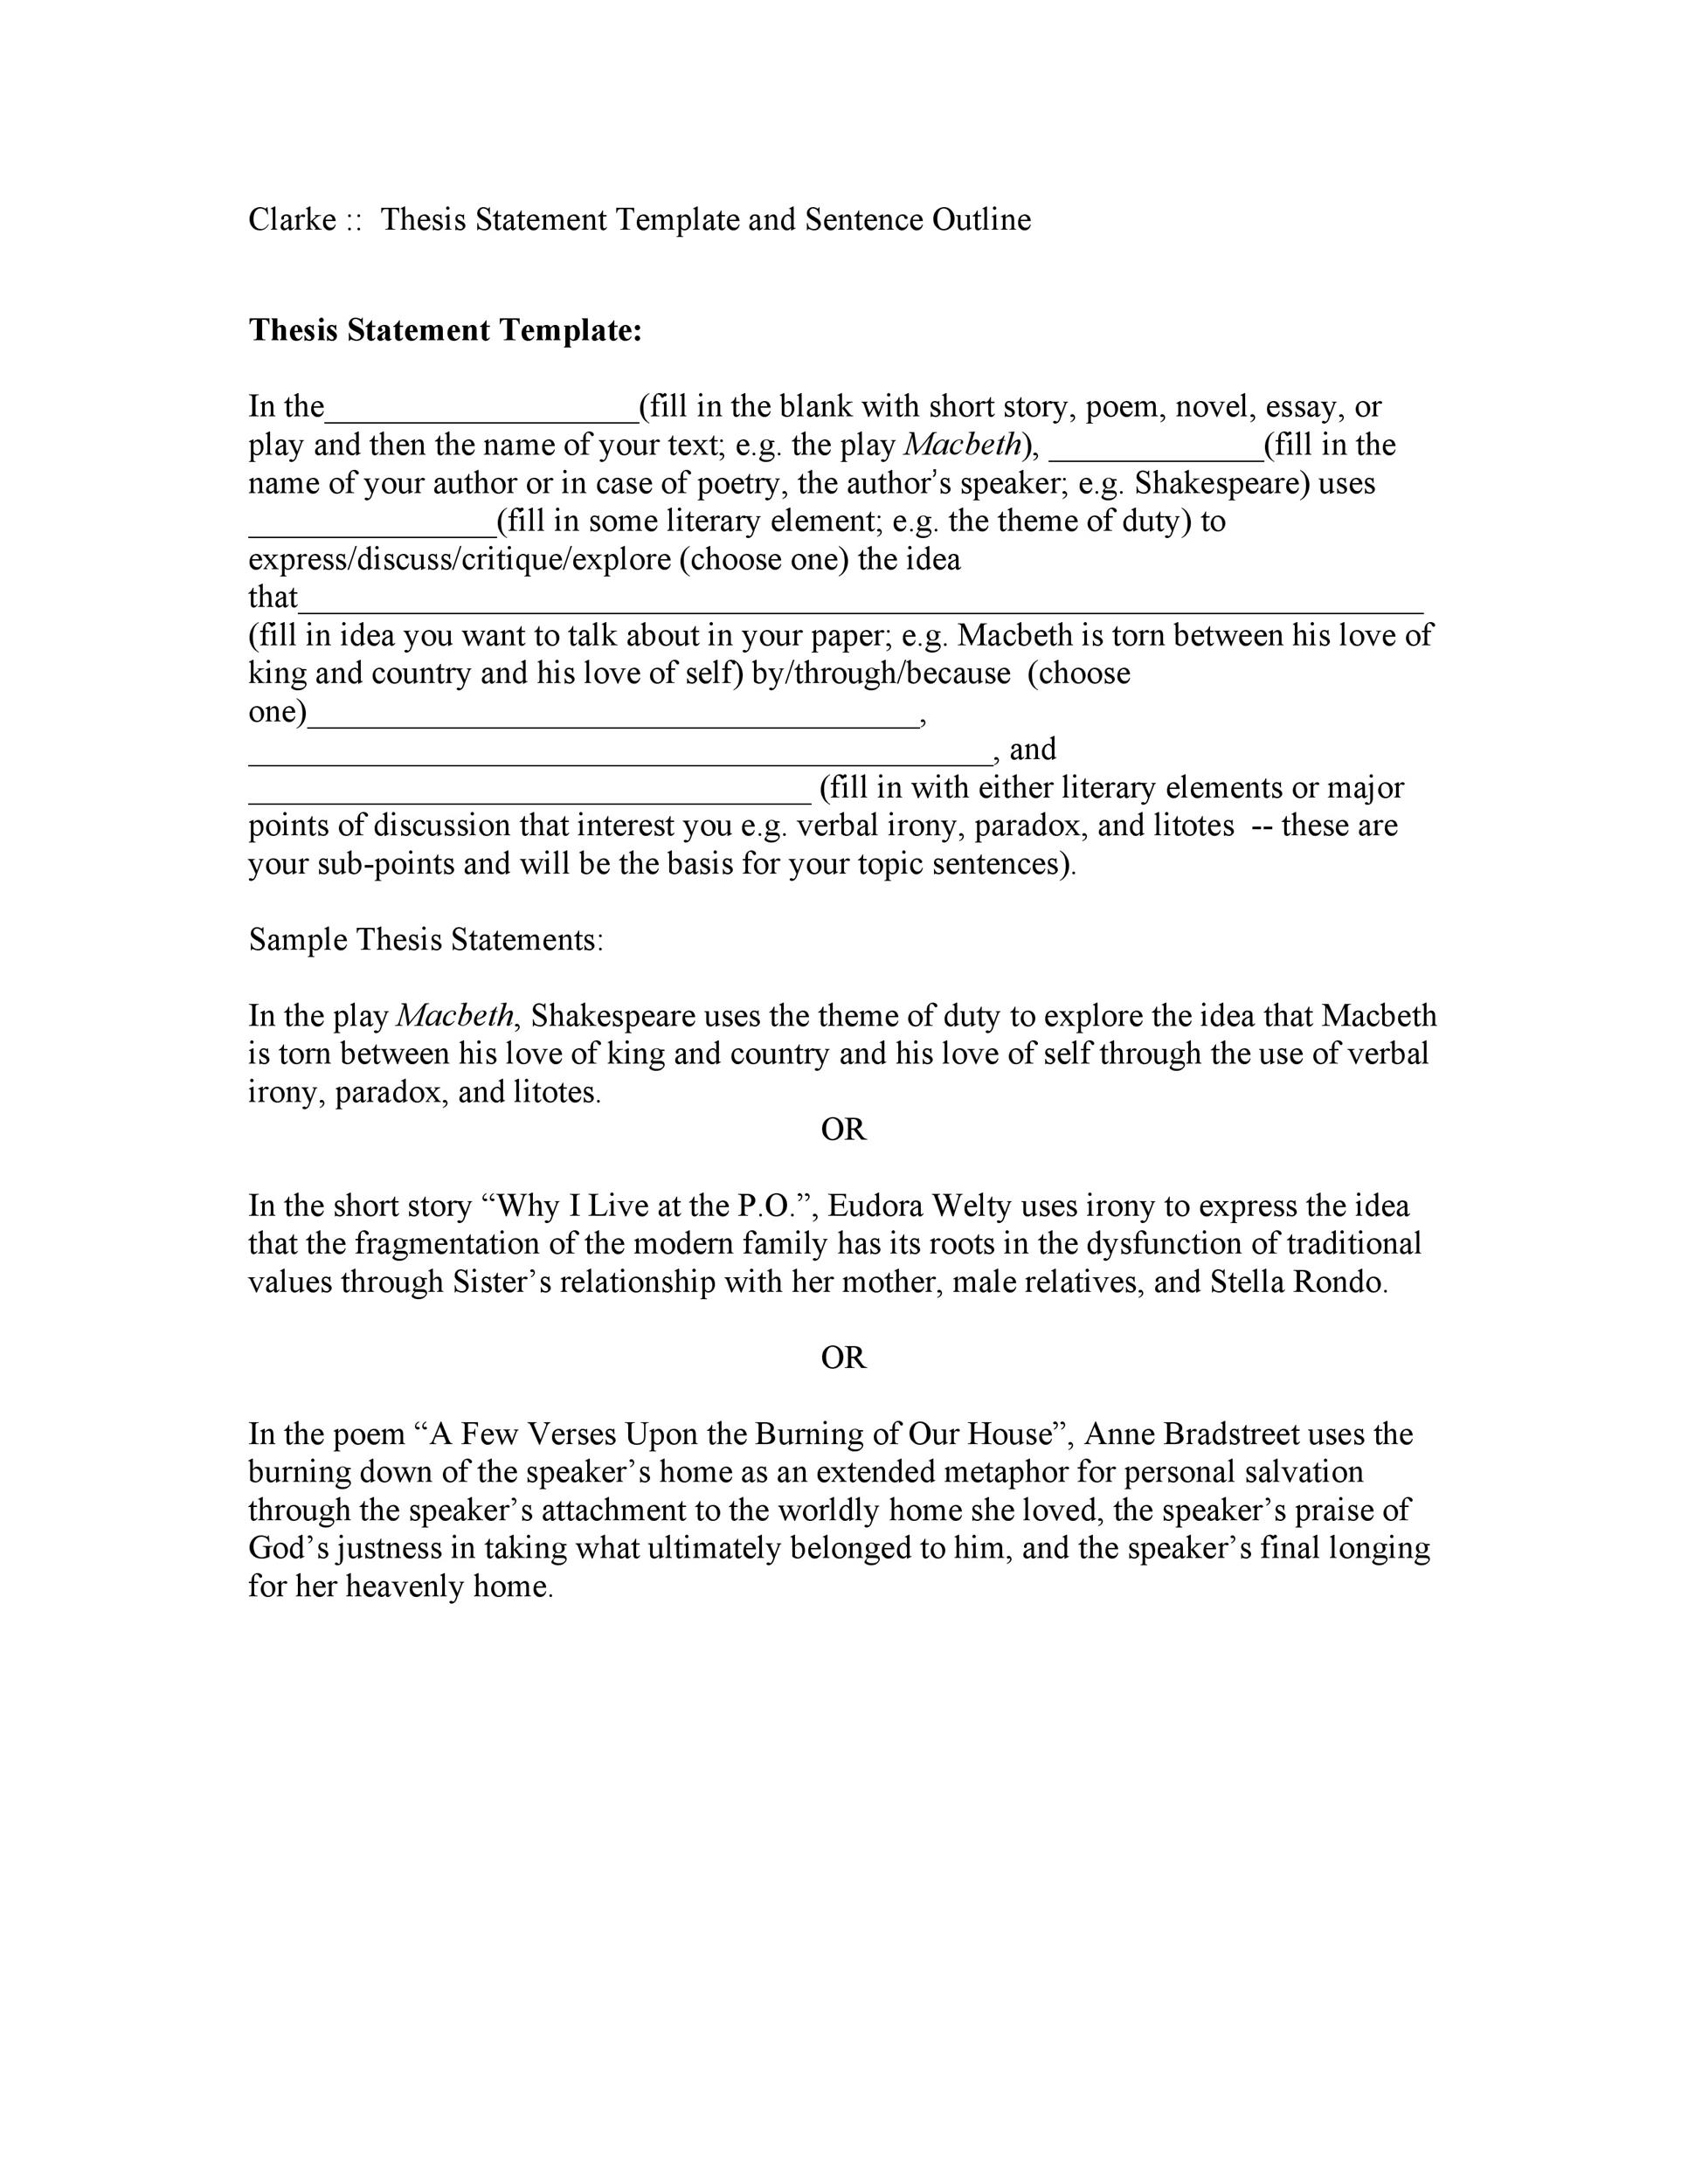 Free thesis statement template 06